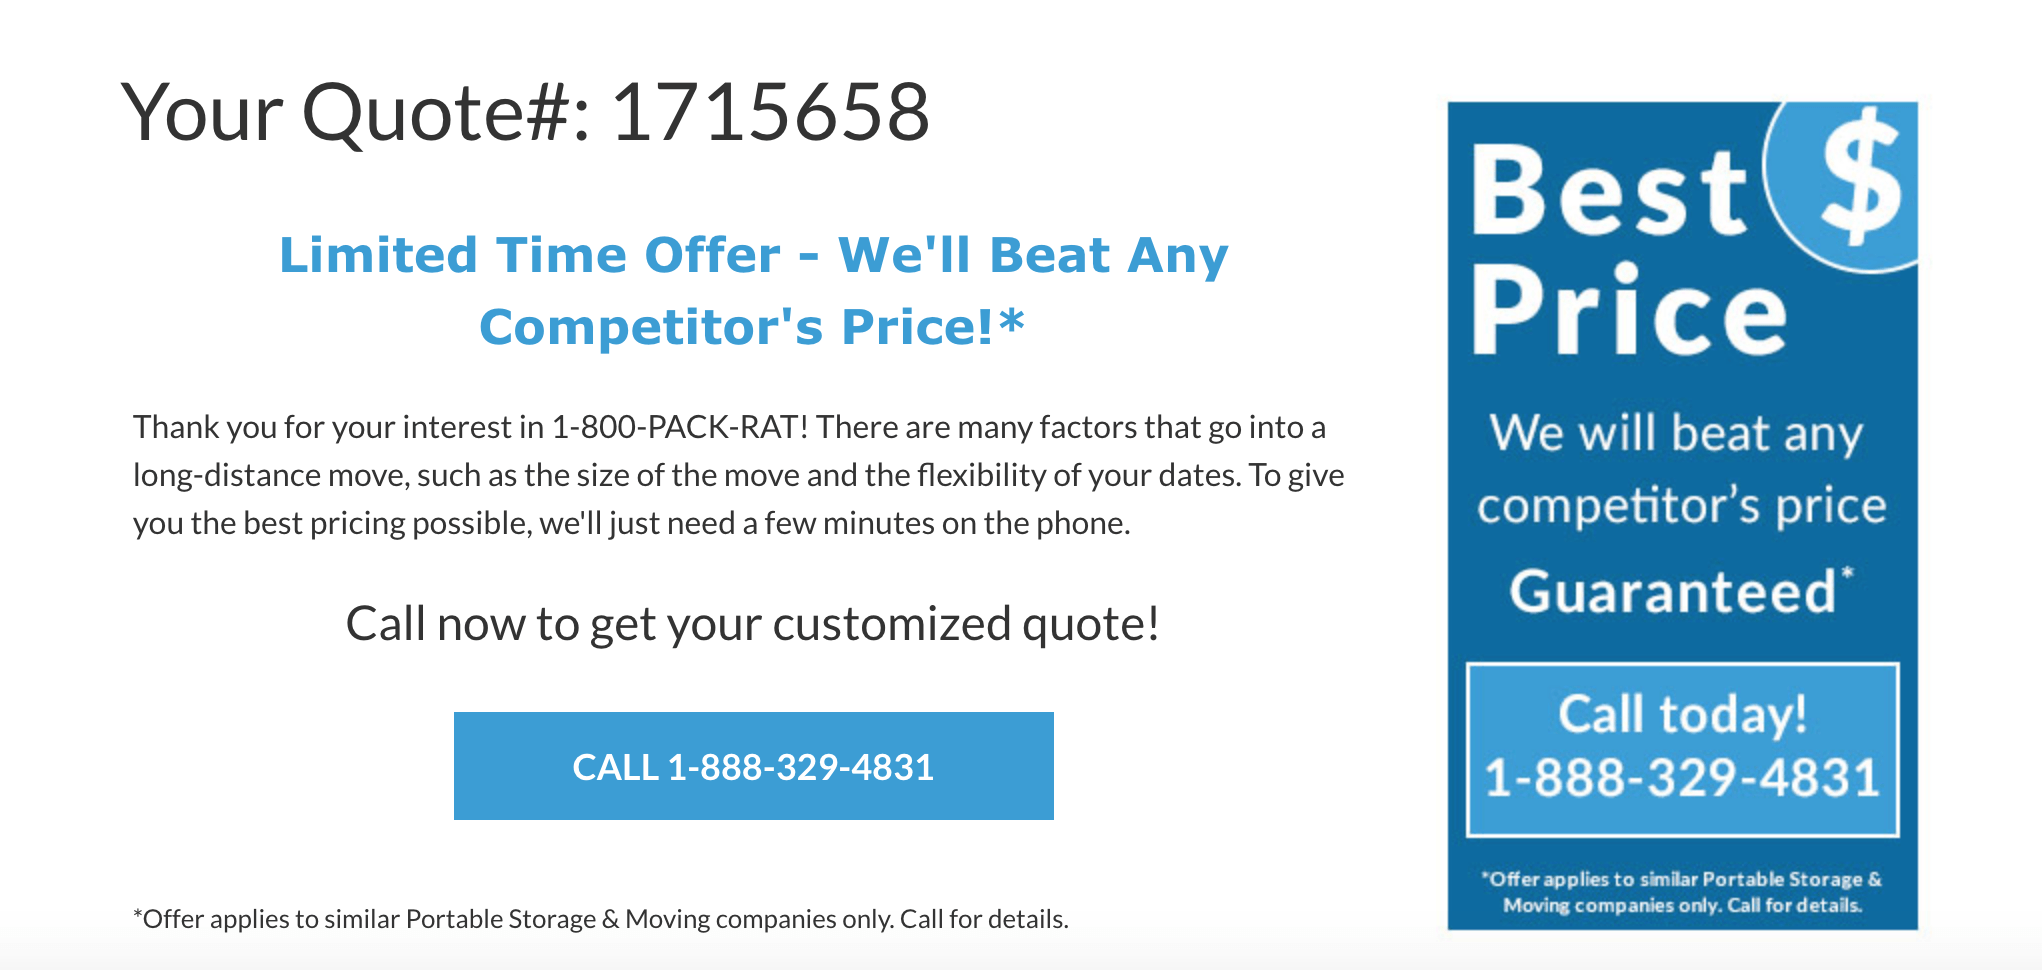 Getting a Quote and Booking with 1-800-PACK-RAT